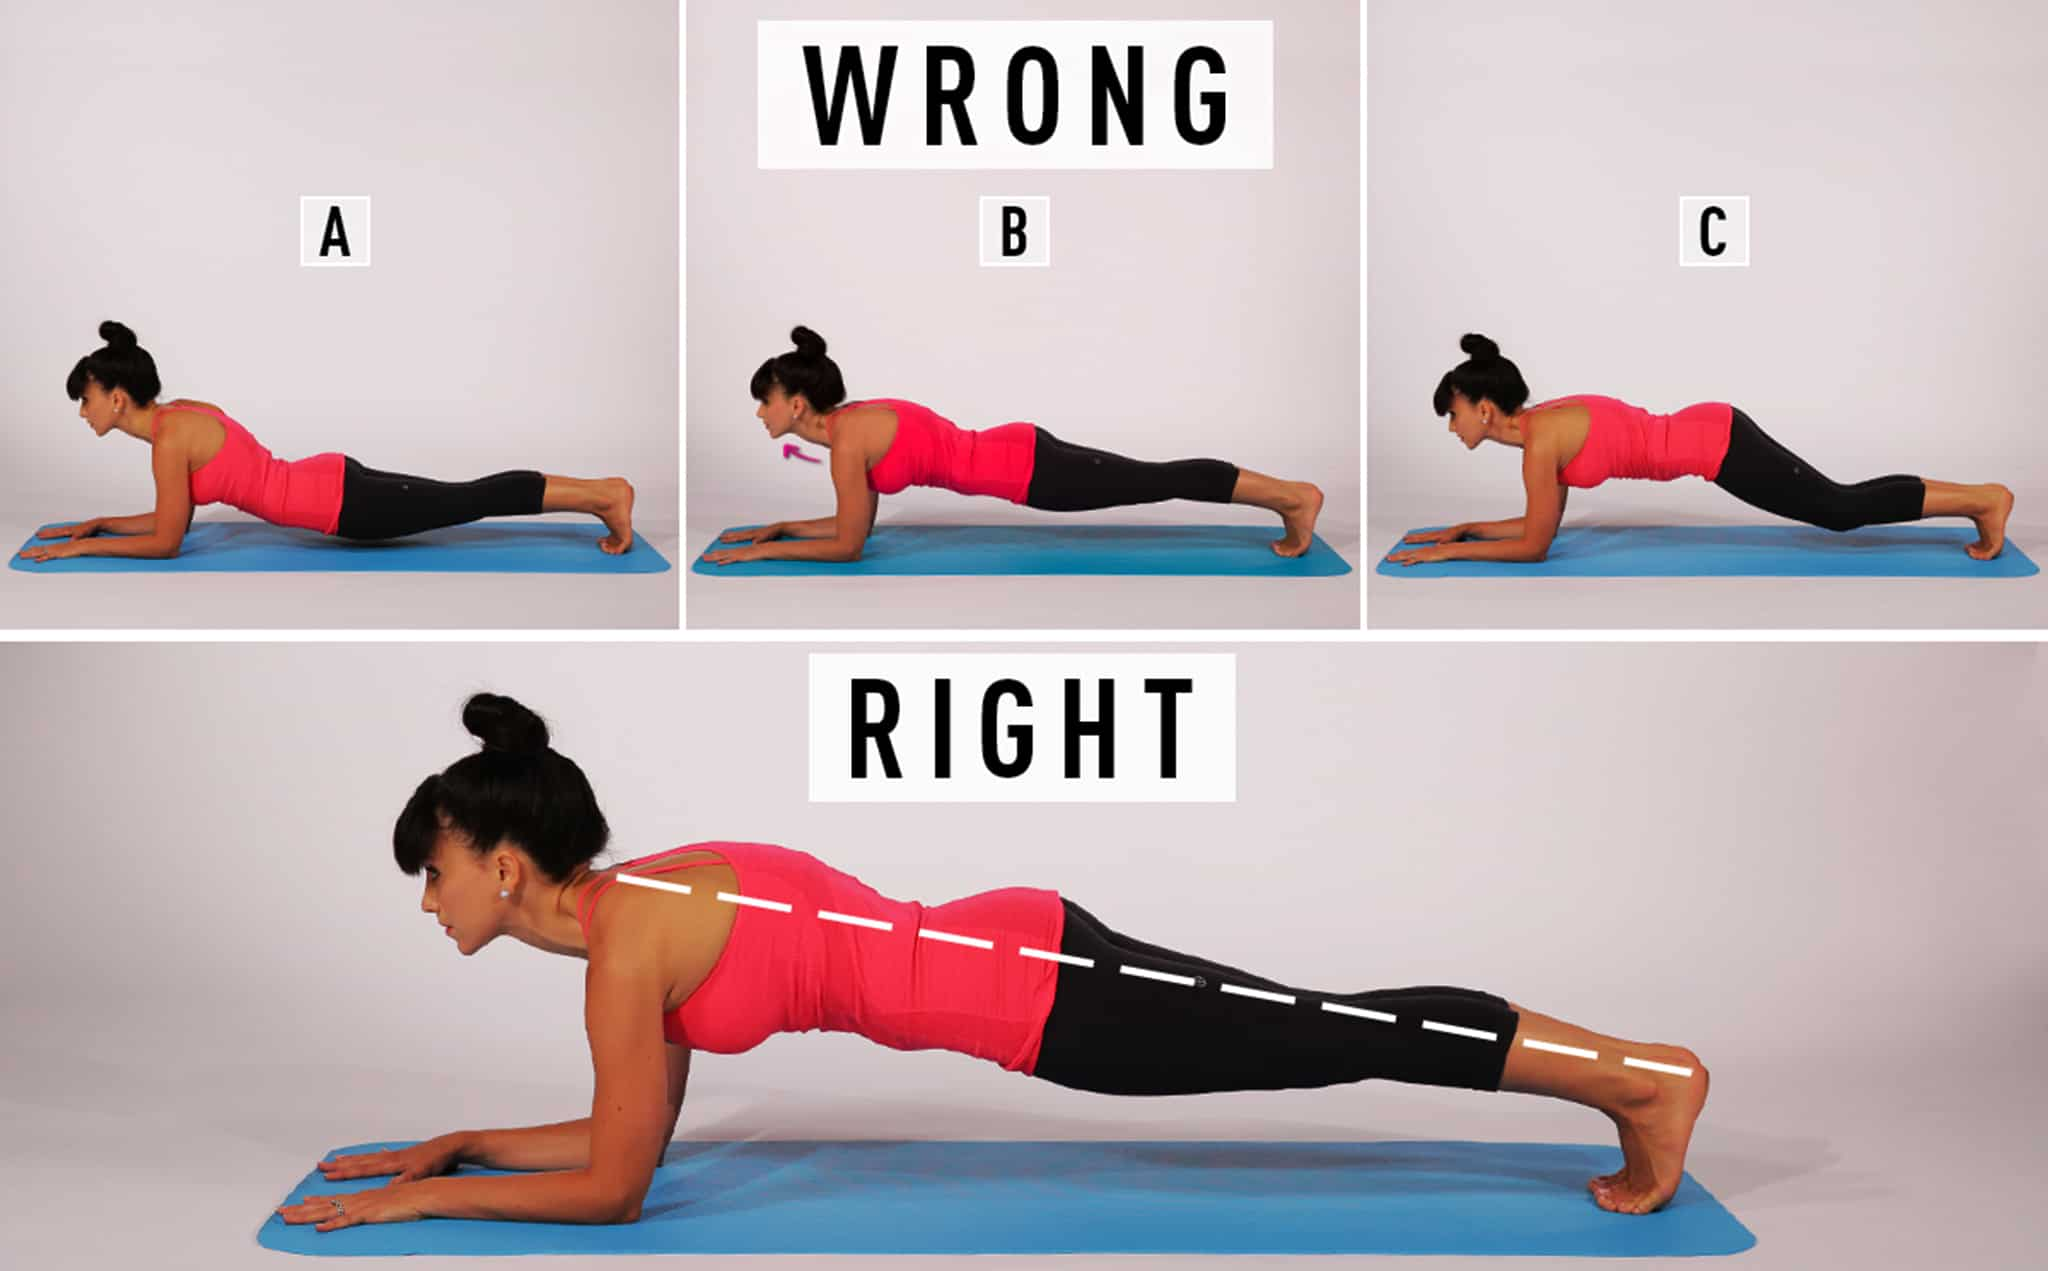 4 minutes a day exercise